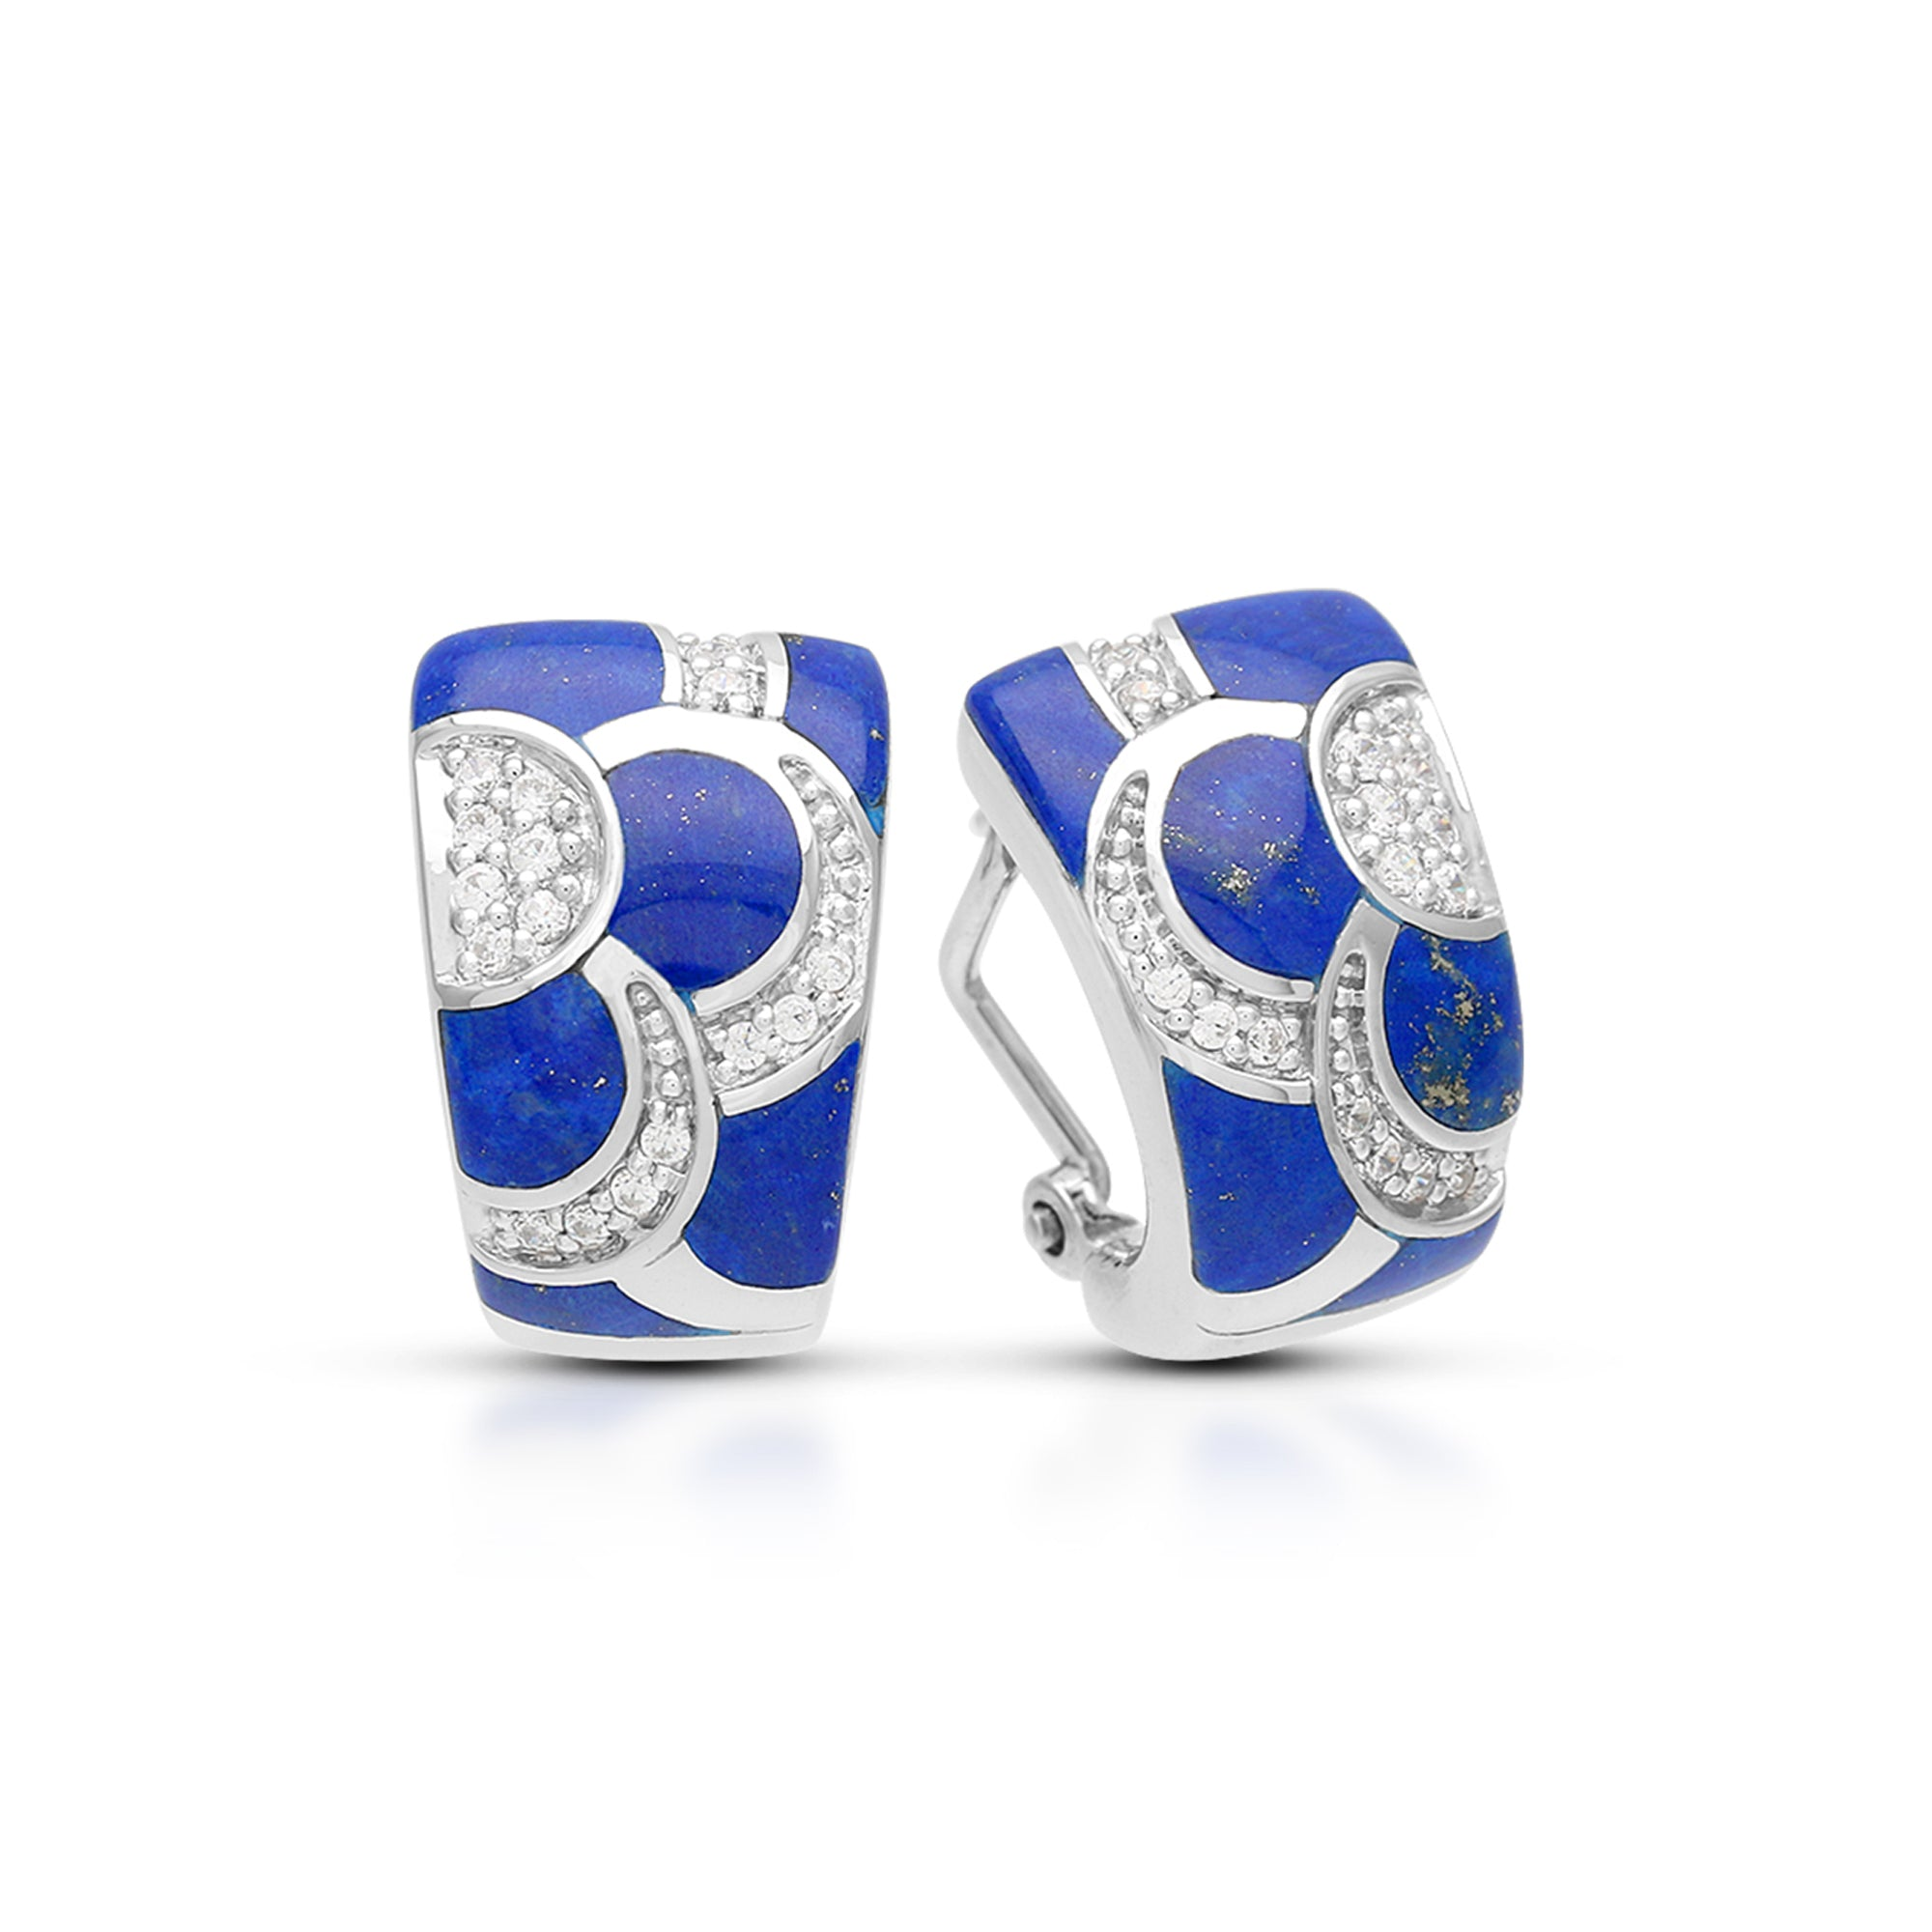 Blue lapis lazuli and white zirconia earrings in sterling silver by Belle Etoile